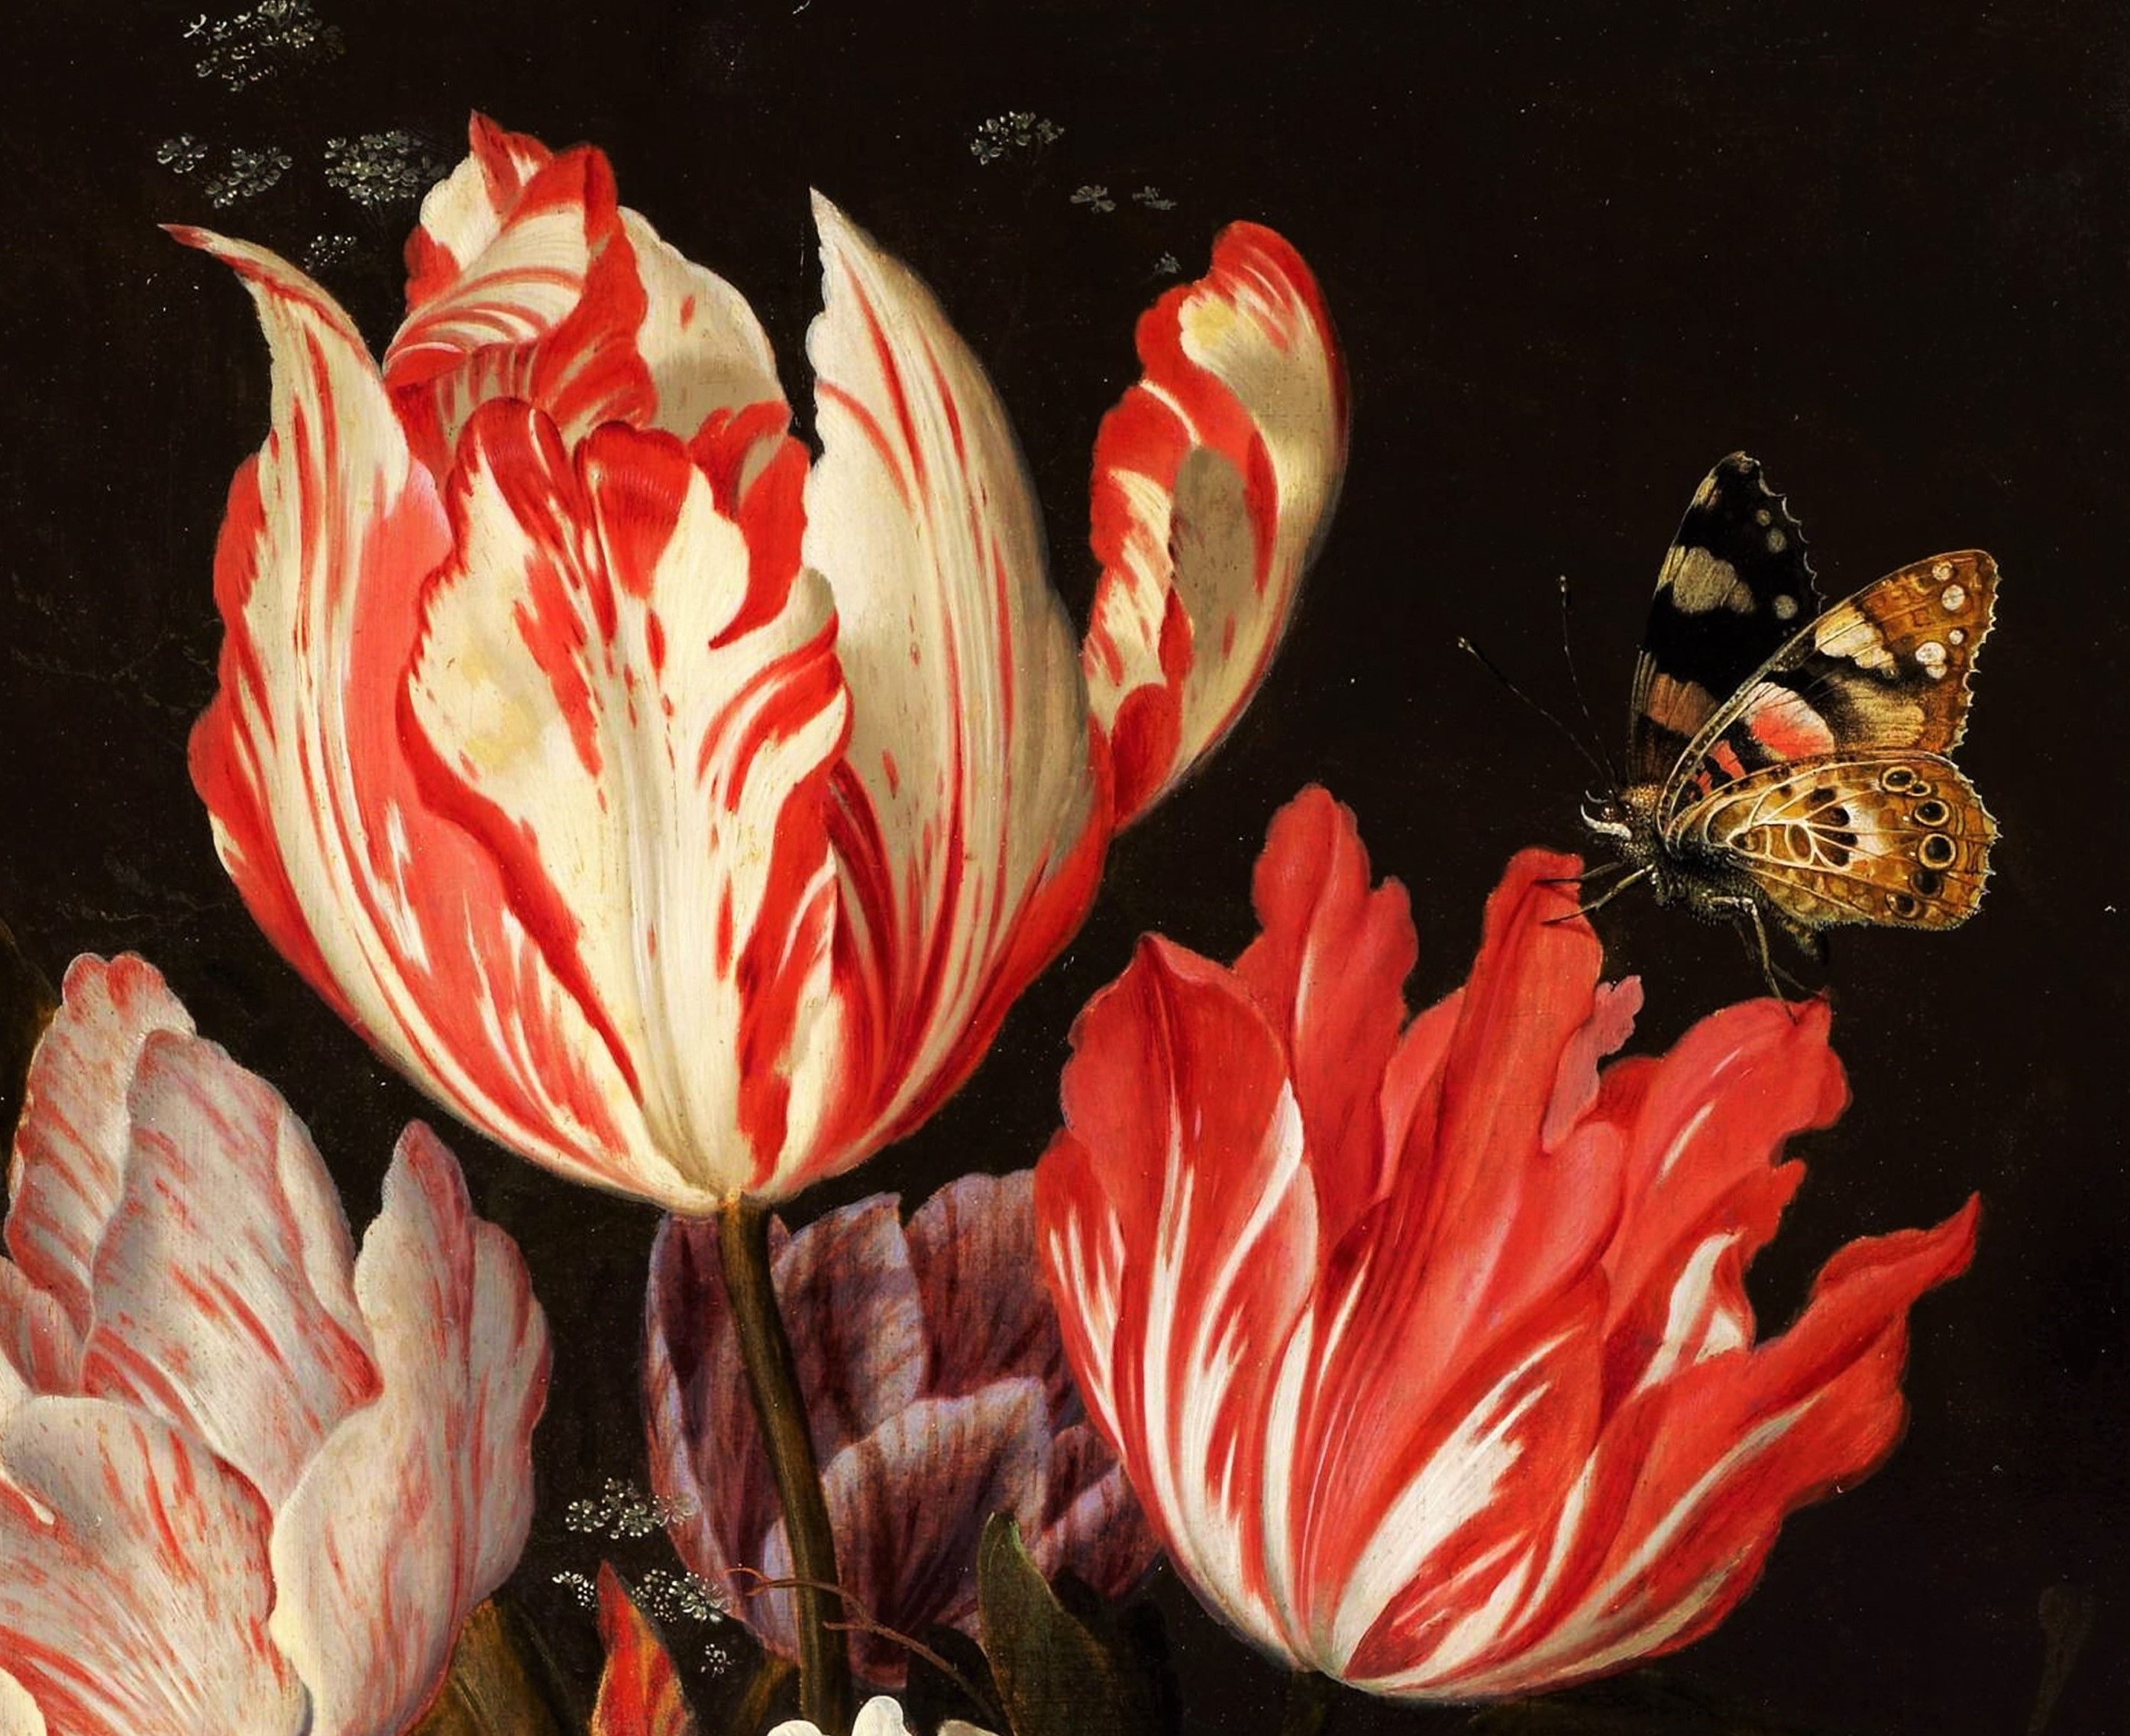 Detail Of Tulips And Butterfly A Still Life Of Tulips And Other Flowers In A Ceramic Vase Balthasar Van Der Ast Floral Painting Flower Painting Flower Art